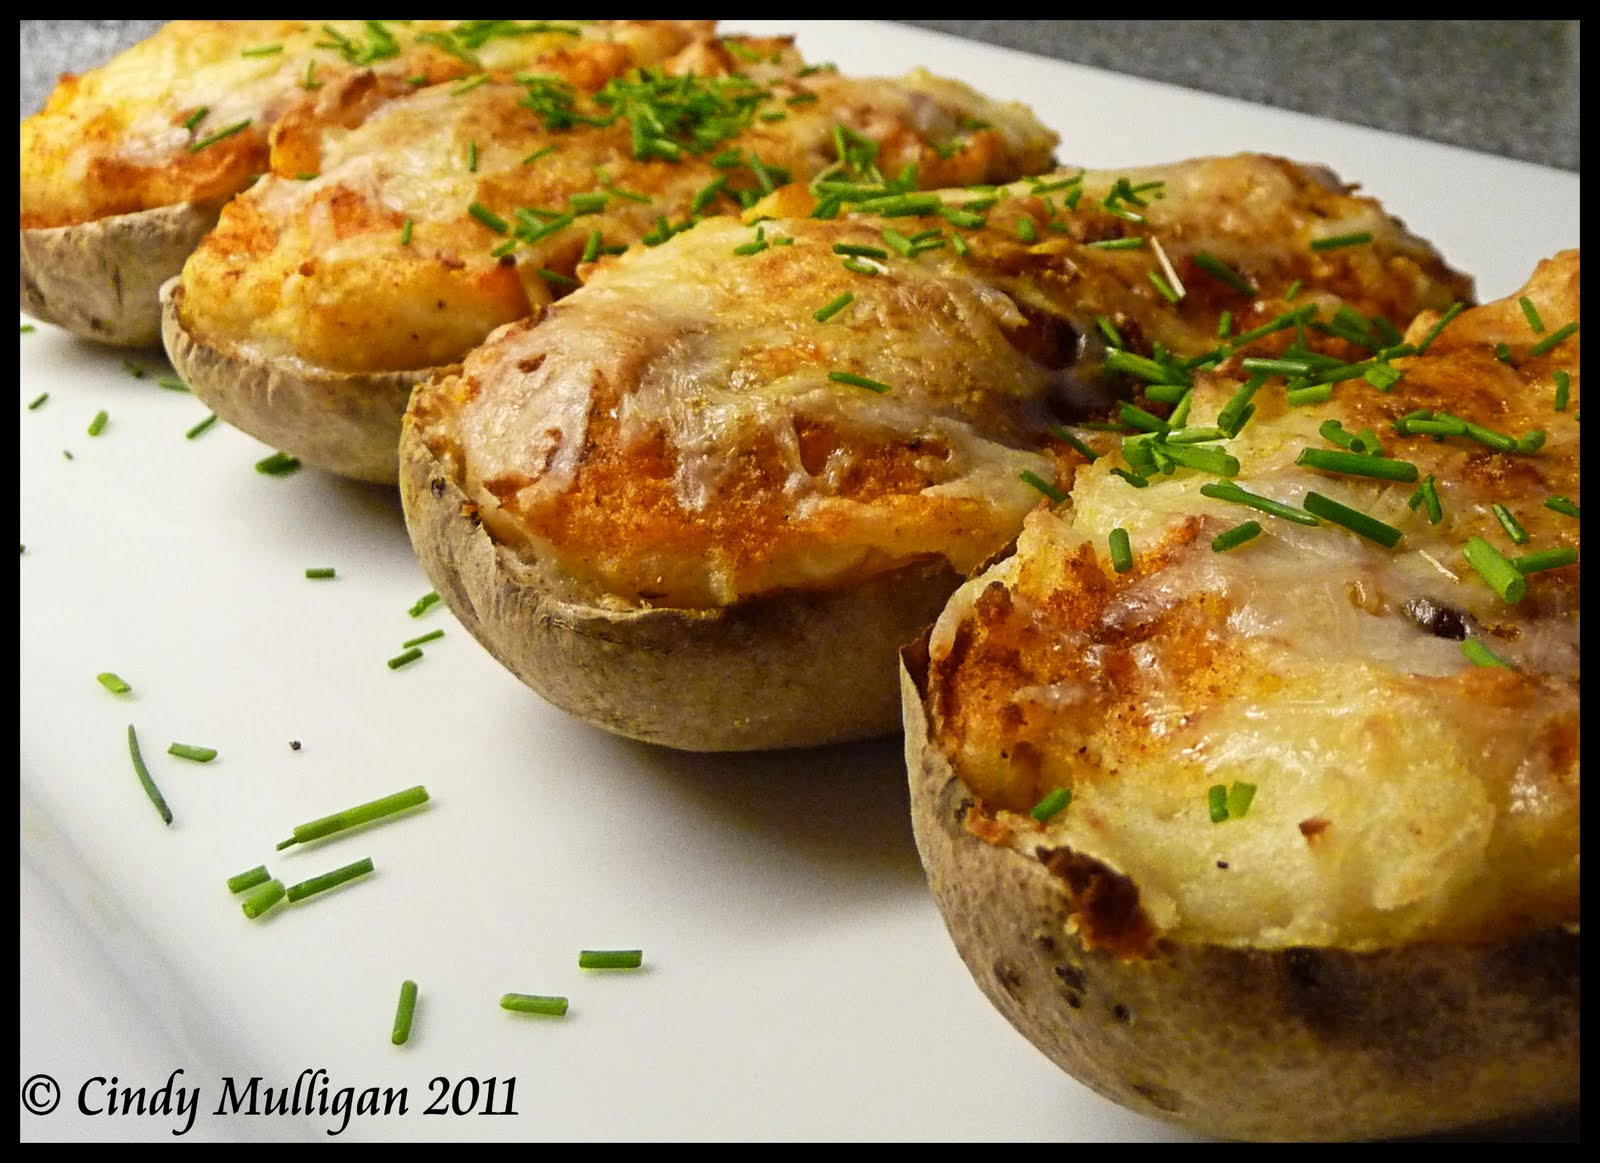 Gumbo Ya Ya: Twice Baked Roasted Garlic Potatoes